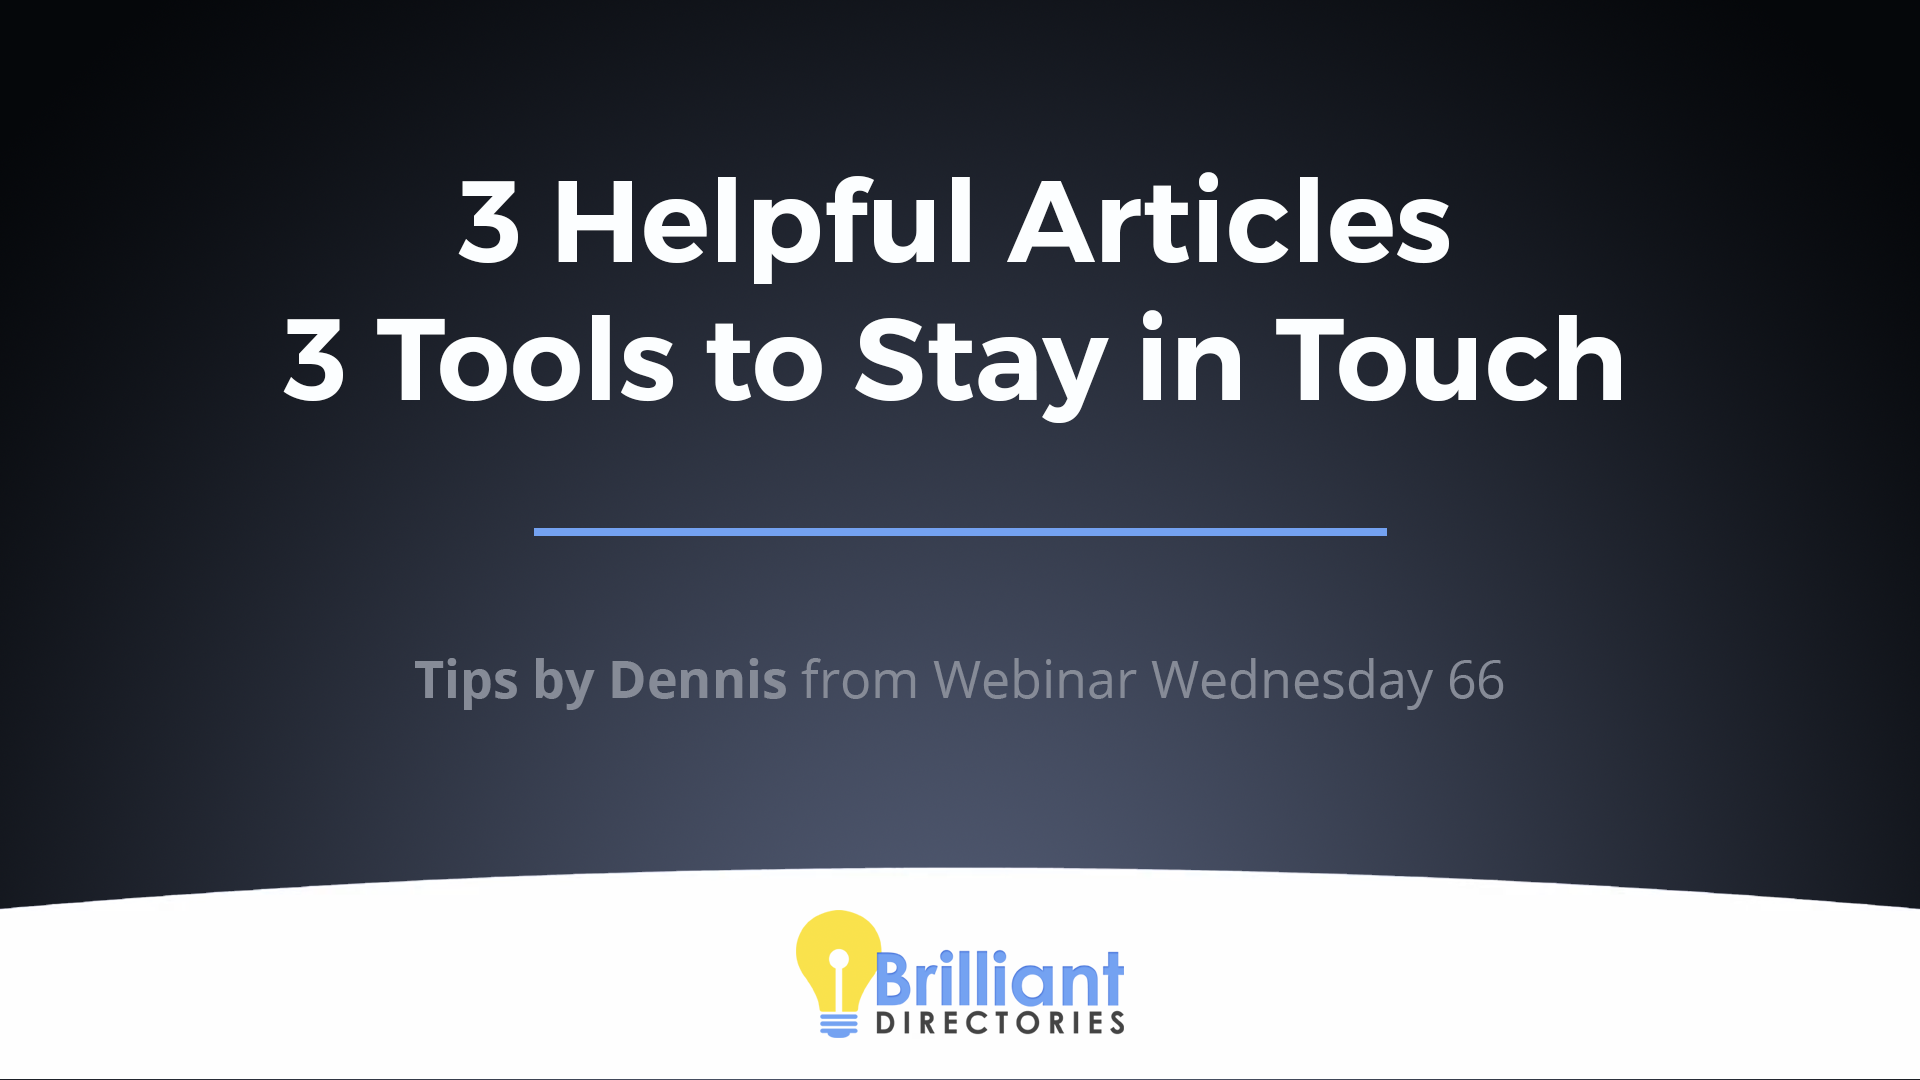 https://www.brilliantdirectories.com/blog/3-amazingly-simple-ways-to-connect-with-potential-members